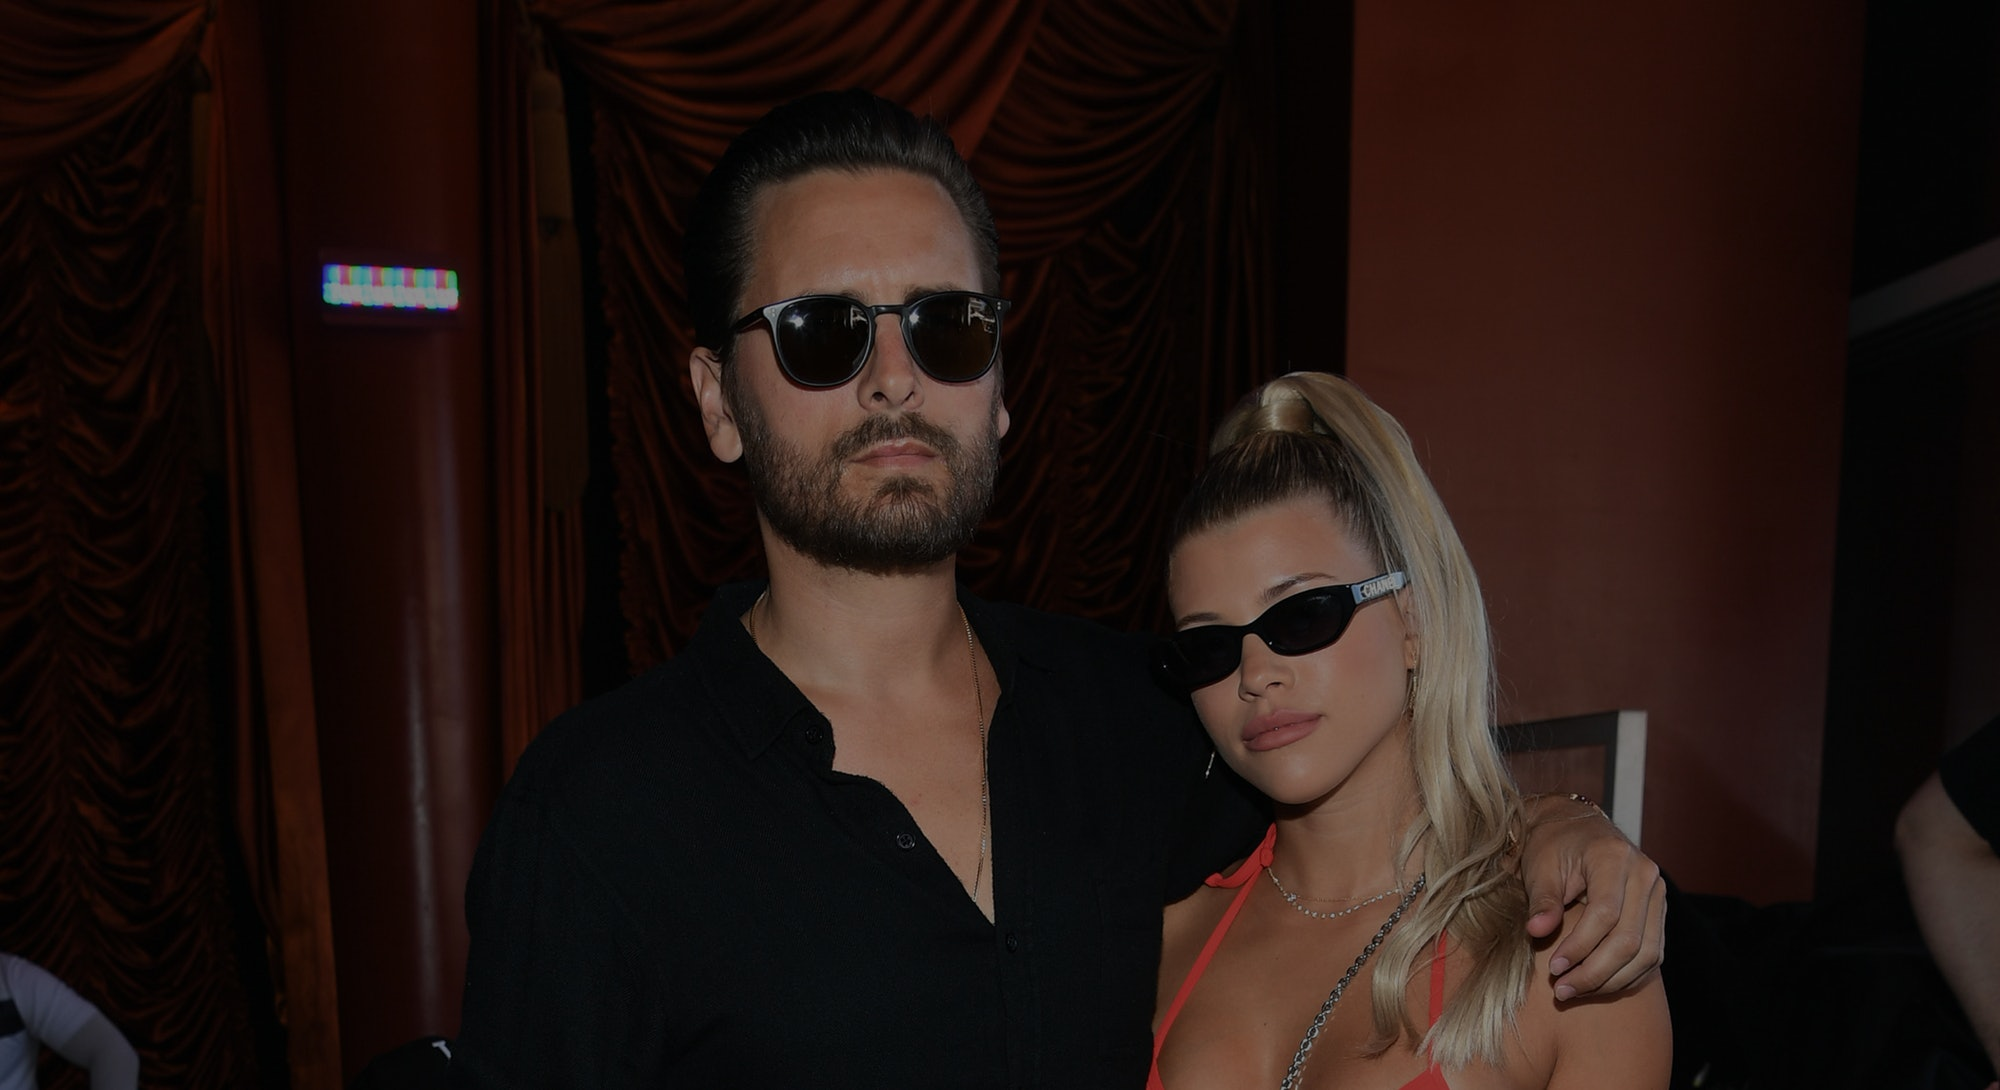 LAS VEGAS, NEVADA - AUGUST 24: Scott Disick and Sofia Richie celebrate Sofia Richie's 21st birthday at Encore Beach Club At Wynn Las Vegas on August 24, 2019 in Las Vegas, Nevada. (Photo by Denise Truscello/Getty Images for Wynn Nightlife)